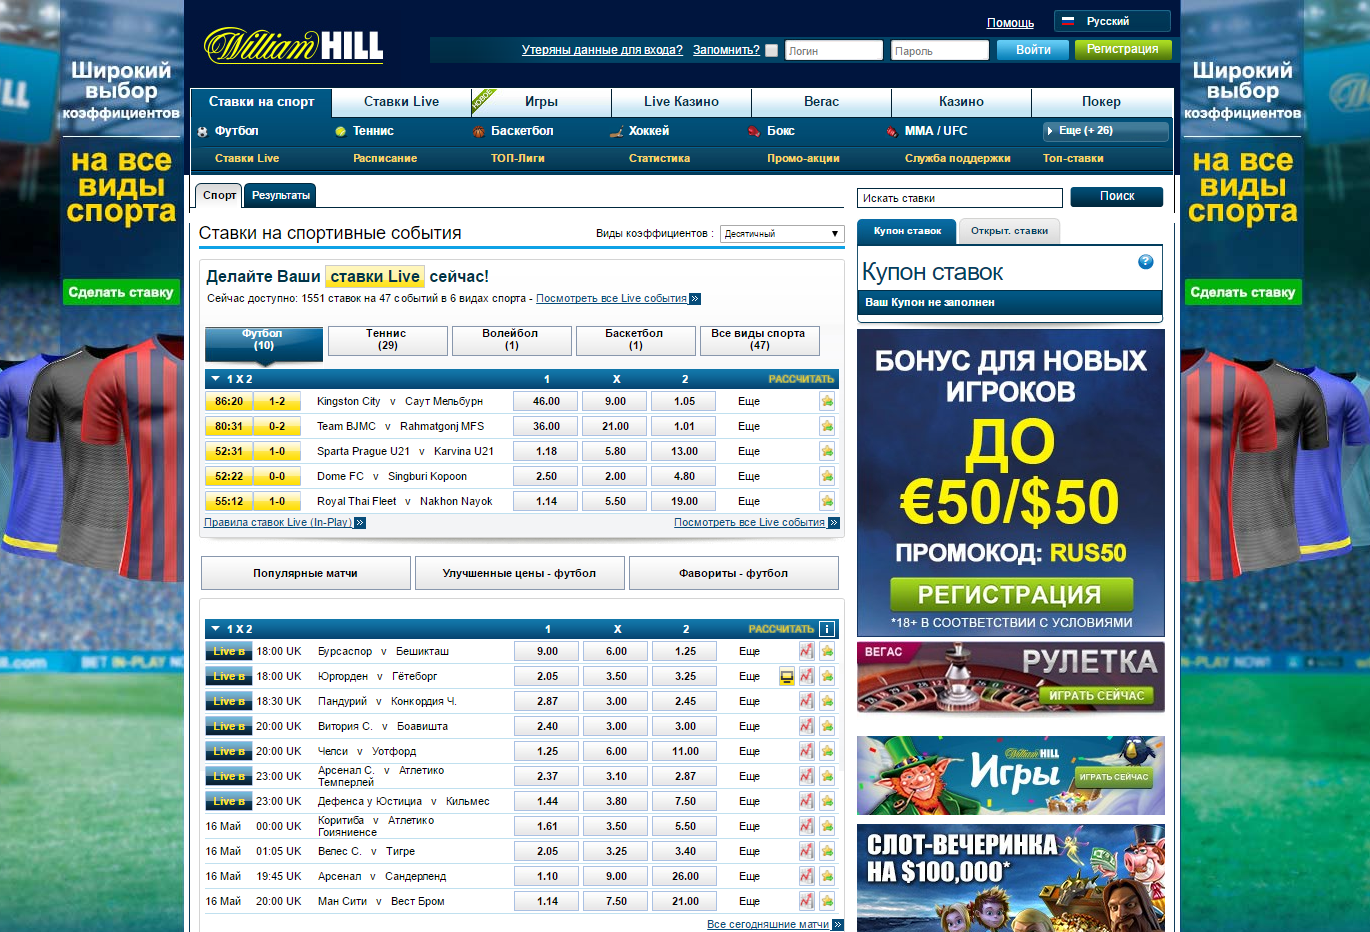 букмекерская контора William Hill сайт